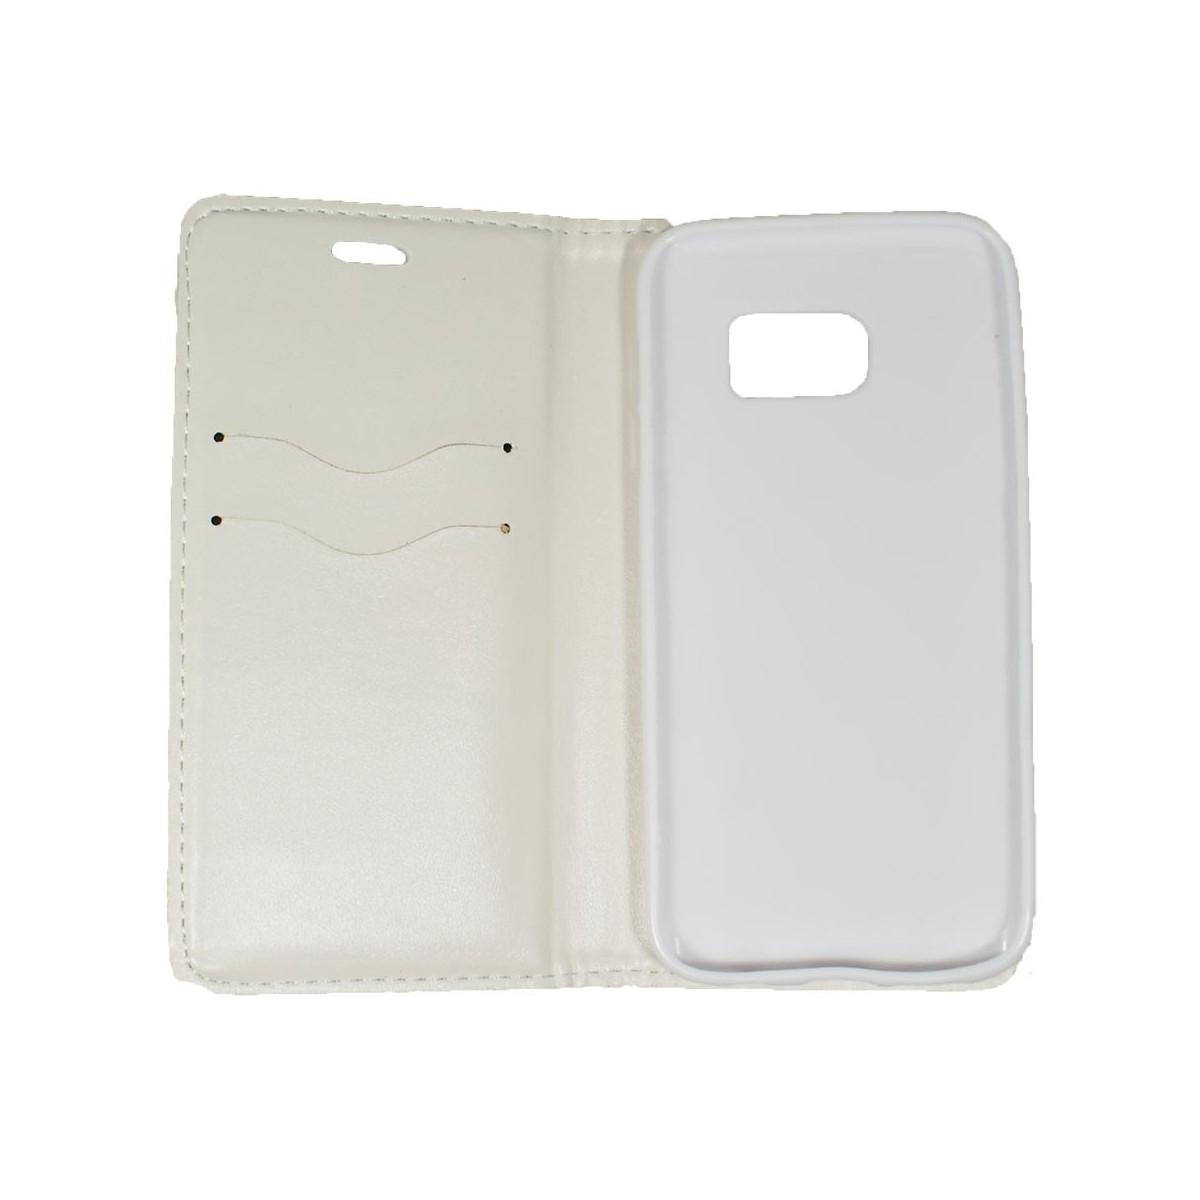 Etui iPhone Galaxy S7 Porte-cartes Blanc - Crazy Kase